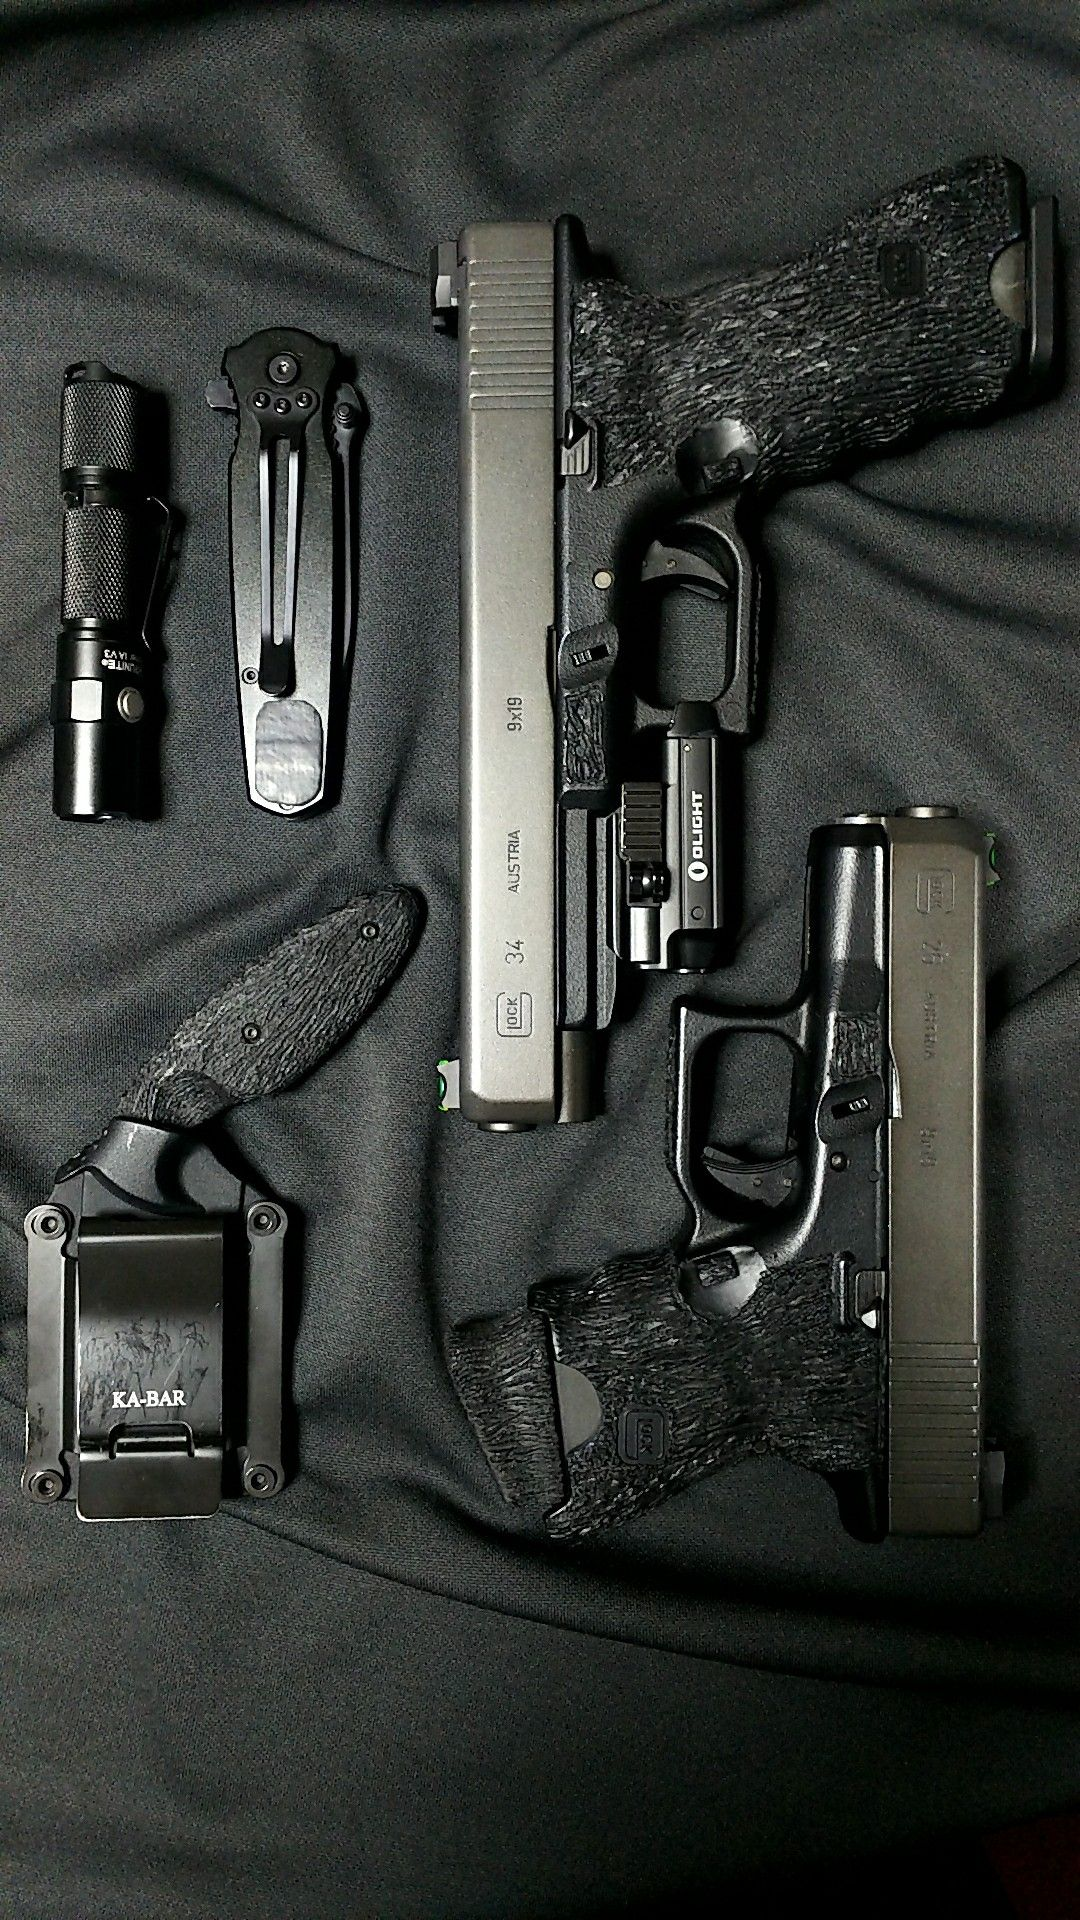 Pin by 제함대 on 무기 pinterest guns firearms and weapons